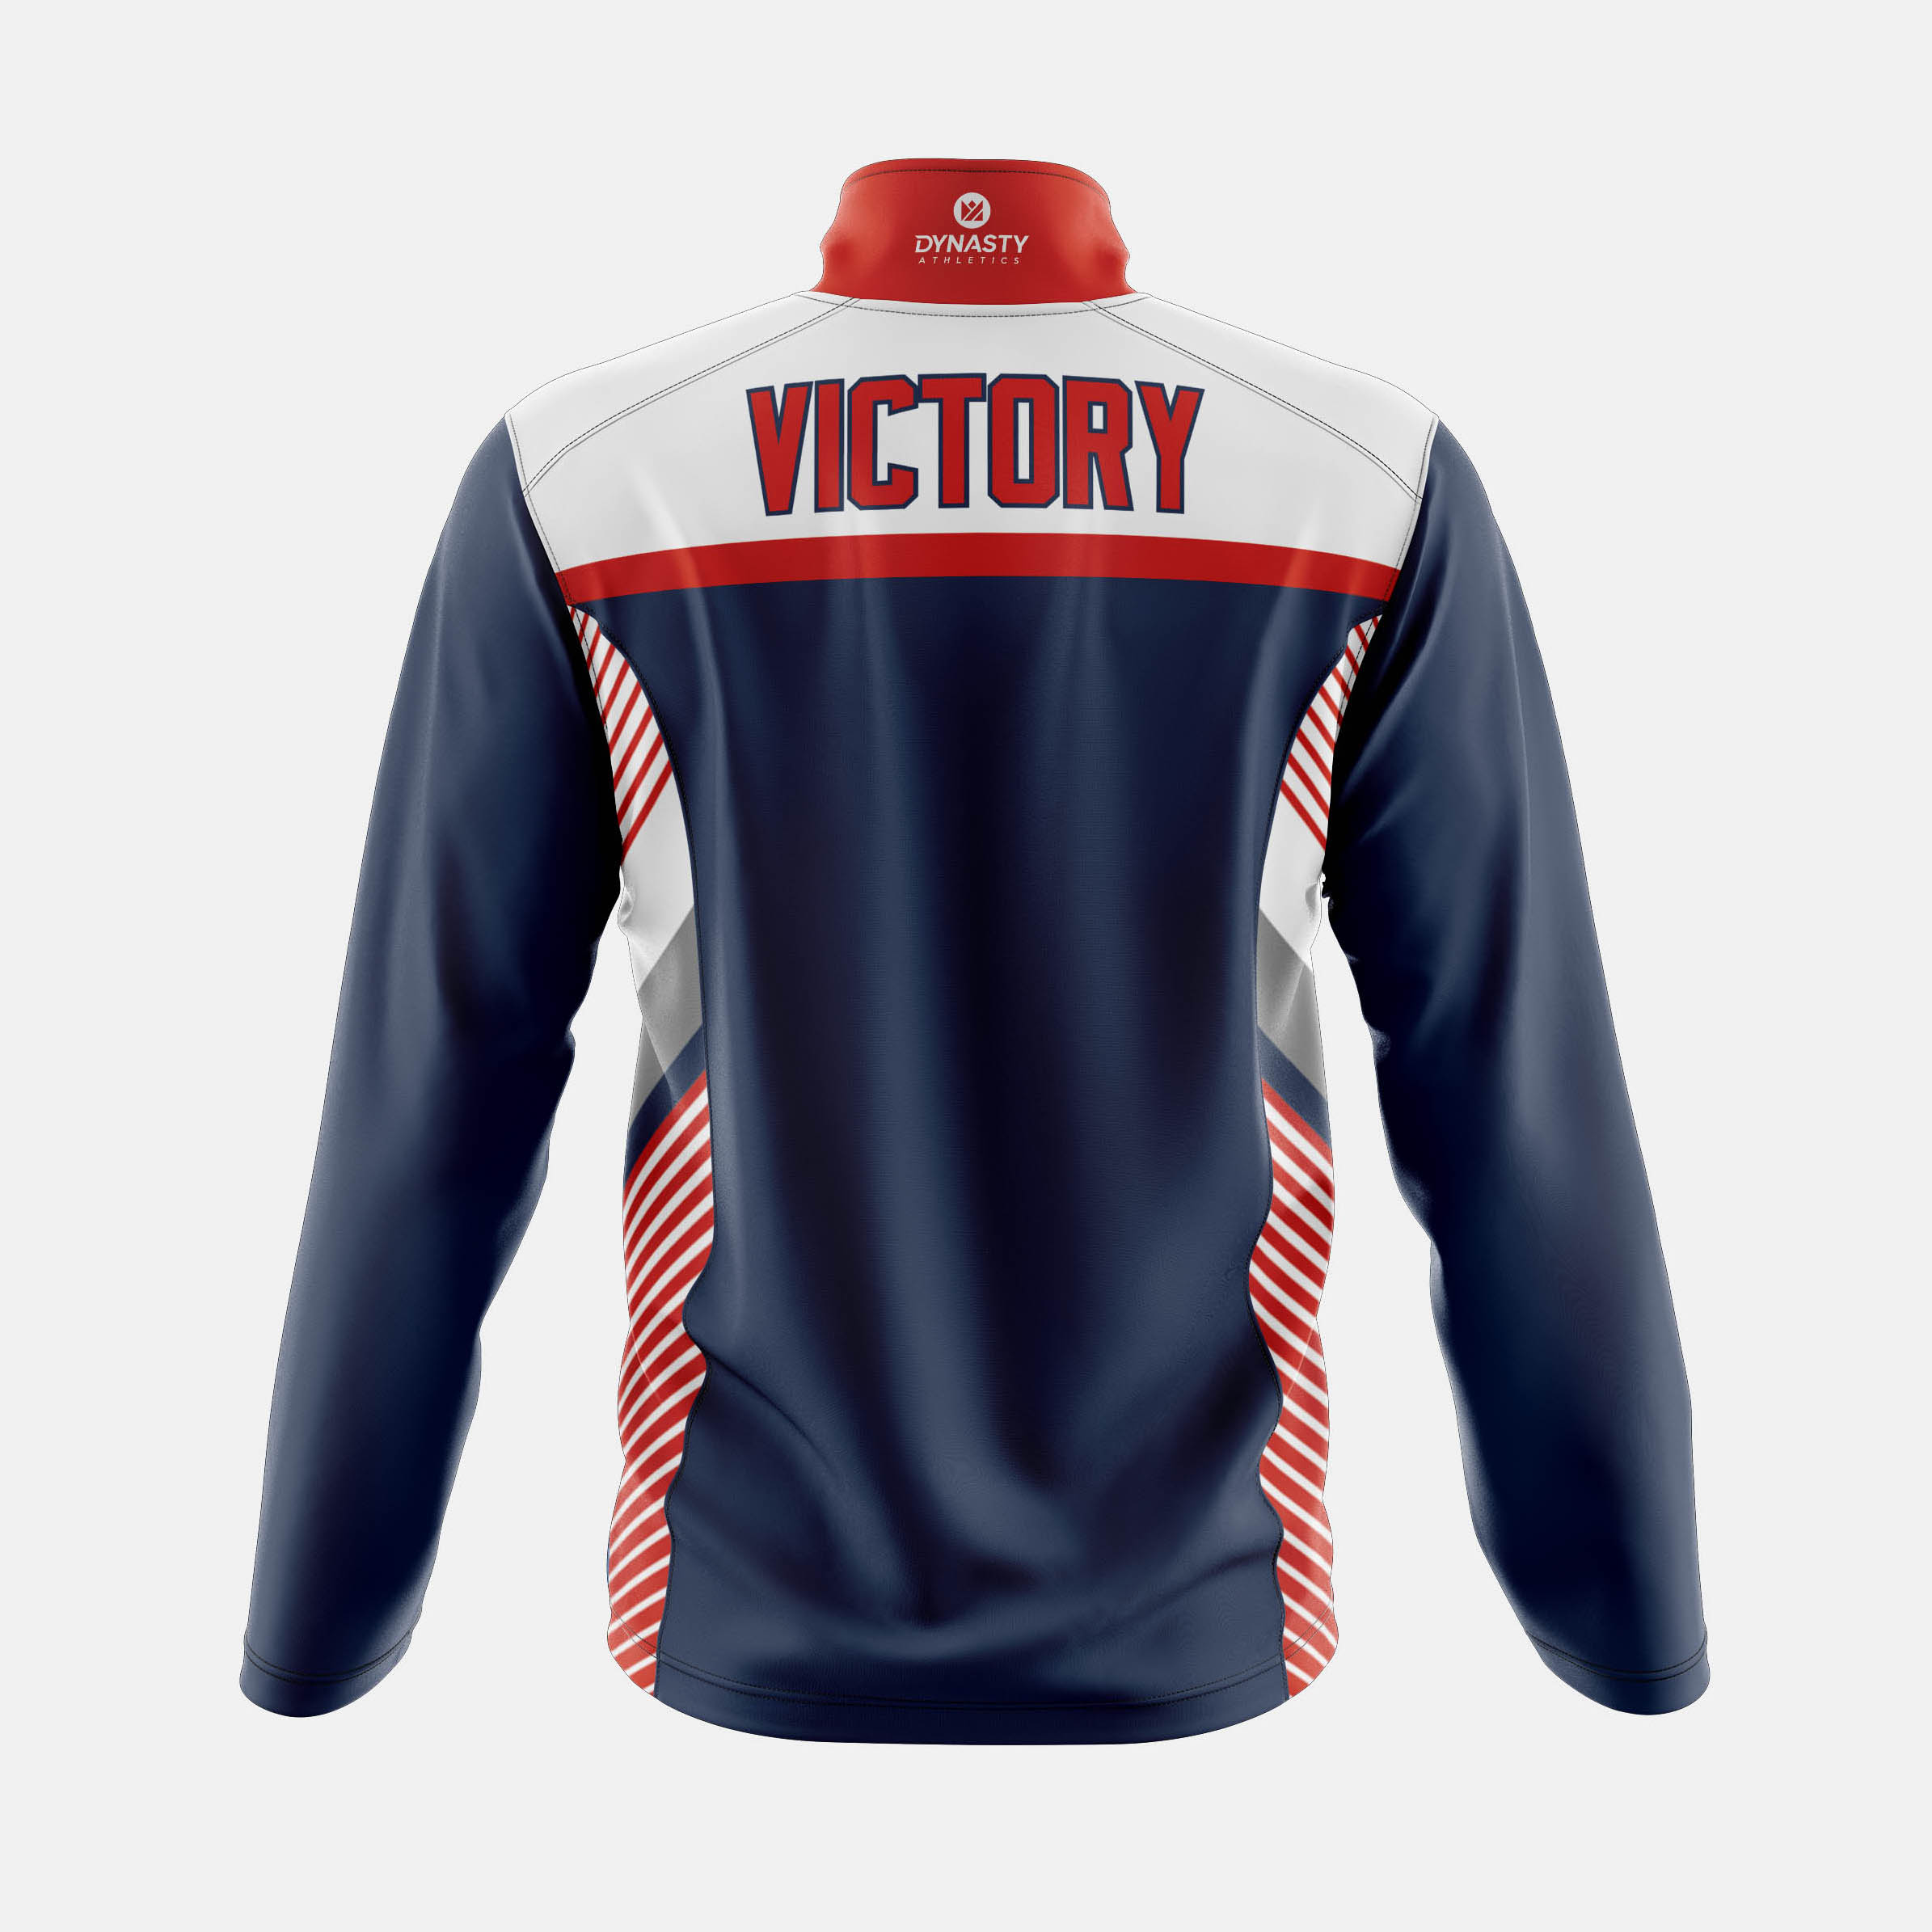 Victory Qtr Zip Tack Jacket Back View